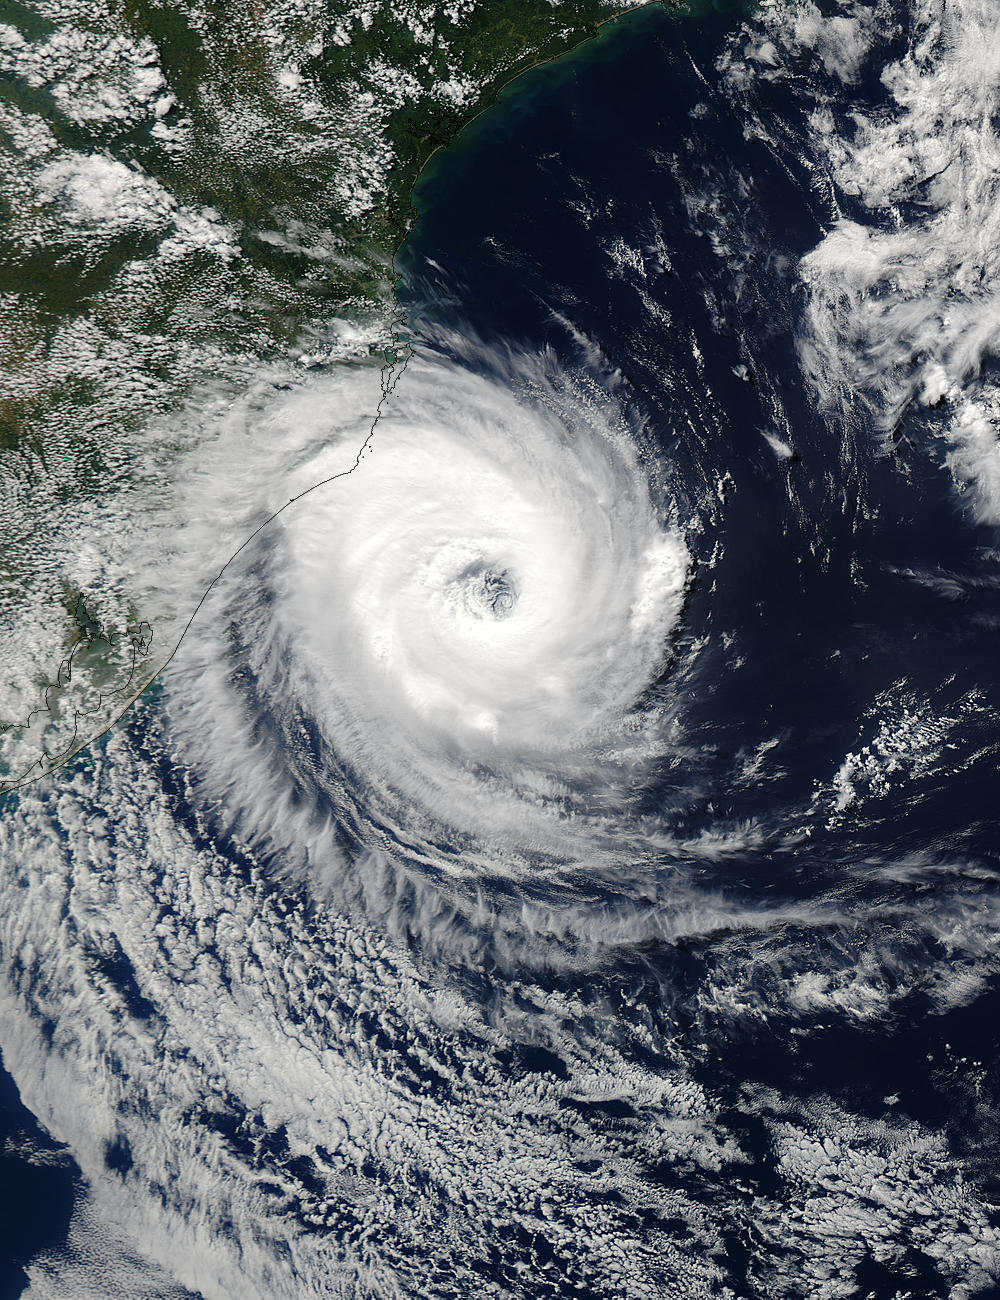 Image of Aqua/MODIS 2004/087 16:30 UTC Tropical cyclone off Southern Brazil (afternoon overpass), Pixel size 1km